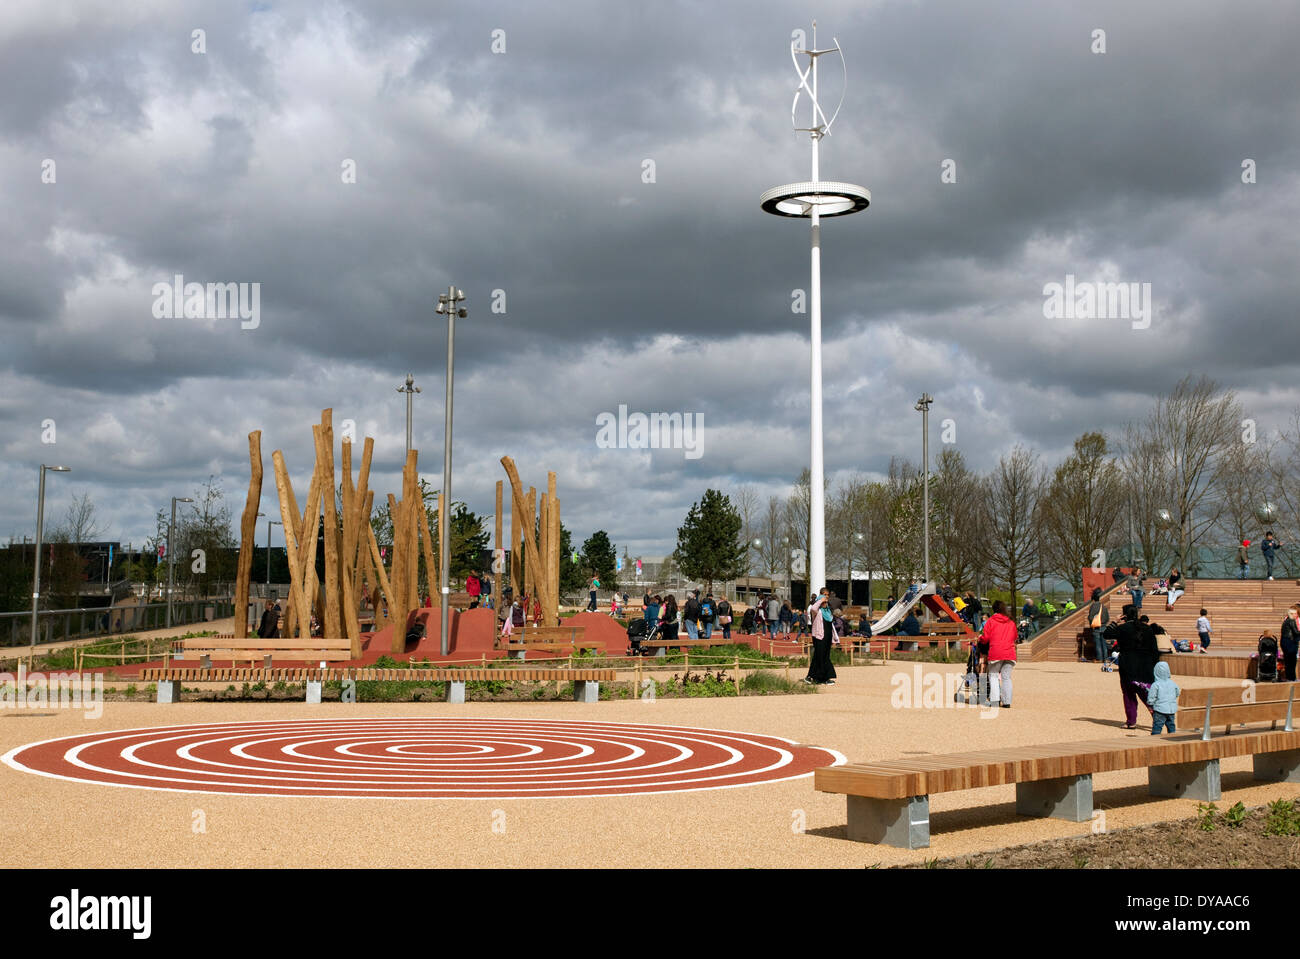 South Plaza Childrens Playground In Queen Elizabeth Olympic Park London